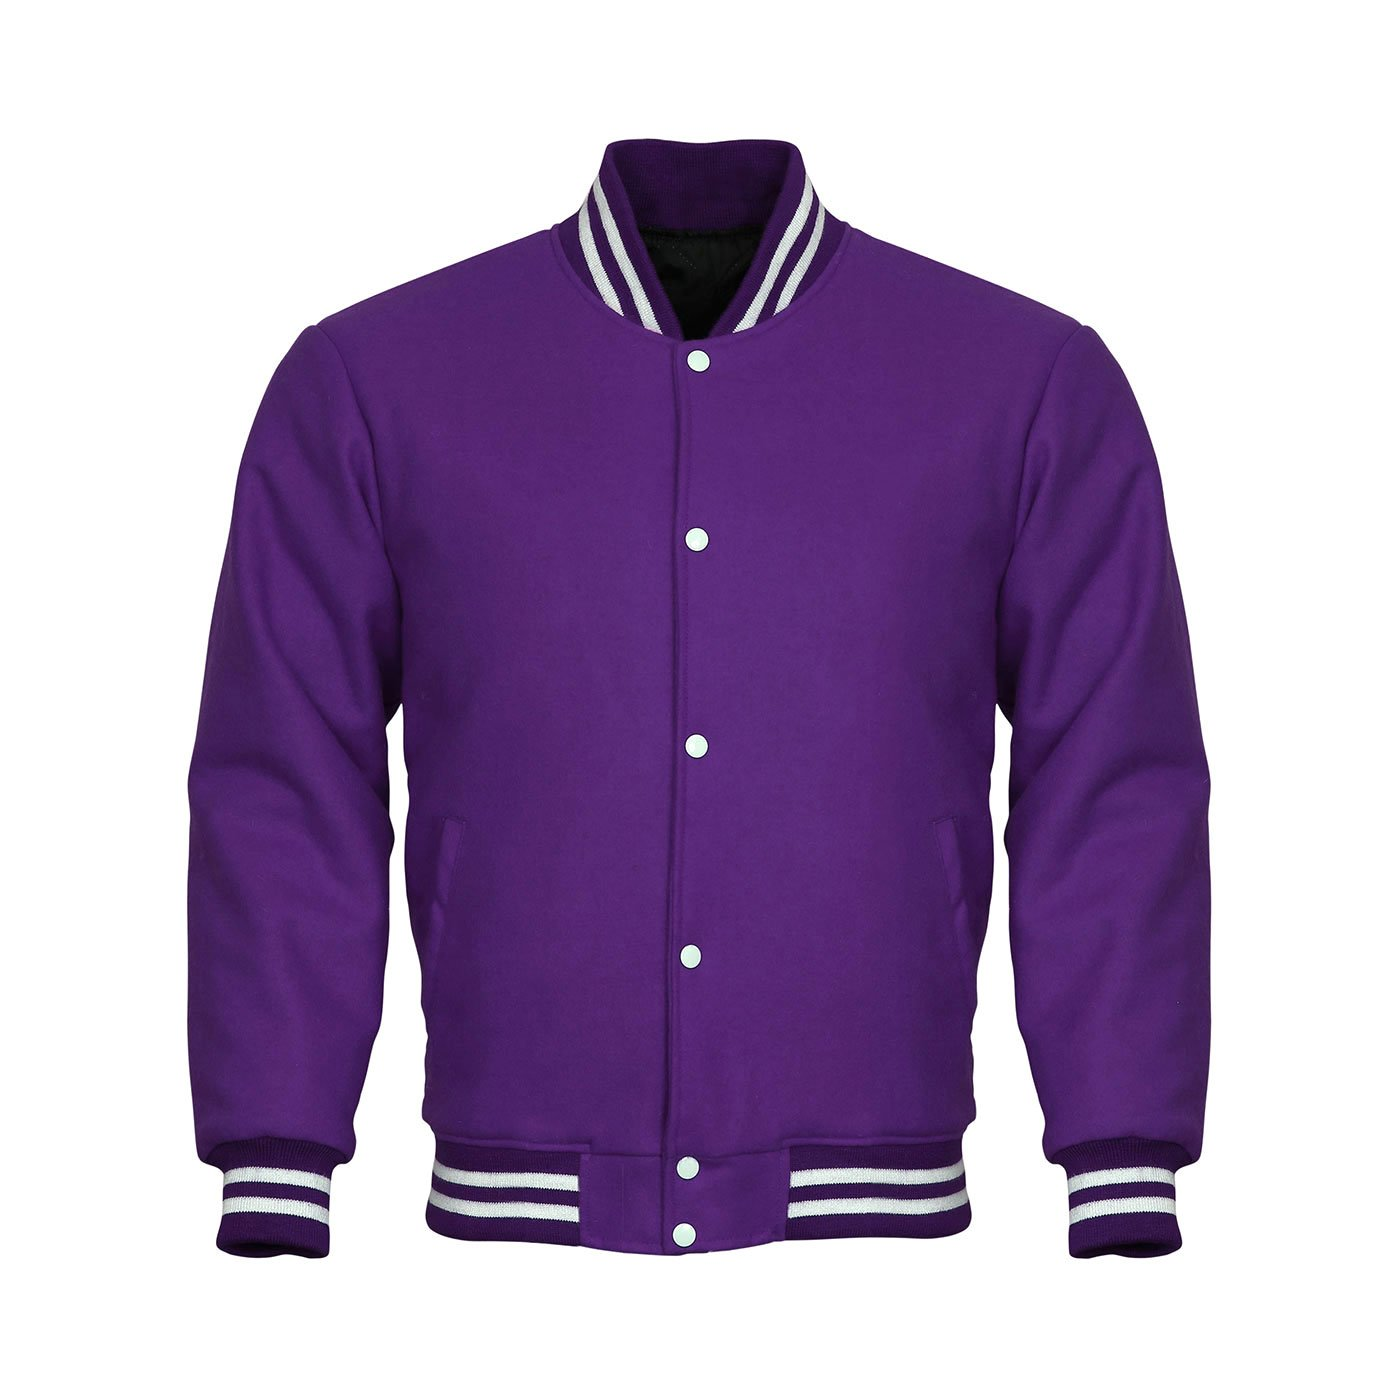 Letterman Varsity Jacket Cotton Fleece (Purple, 5XL) by Design Custom Jackets